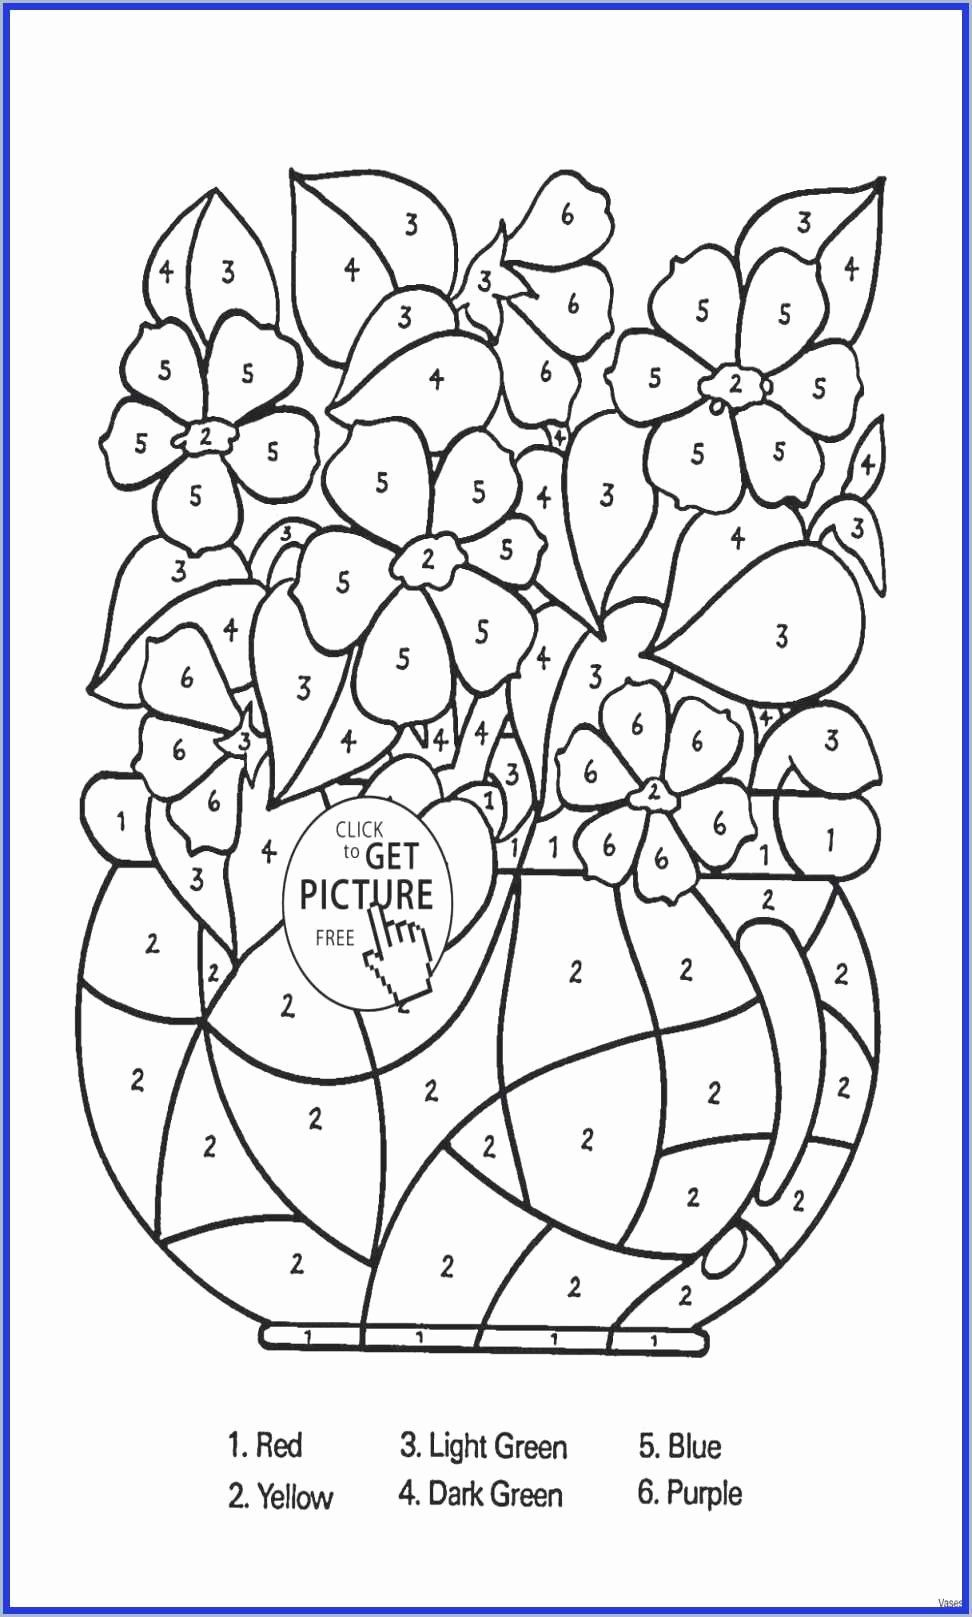 Coloring Activities For 5th Graders Unique Coloring Math Coloringges Addition For 2nd Graders In 2020 Fall Coloring Pages Heart Coloring Pages Summer Coloring Pages